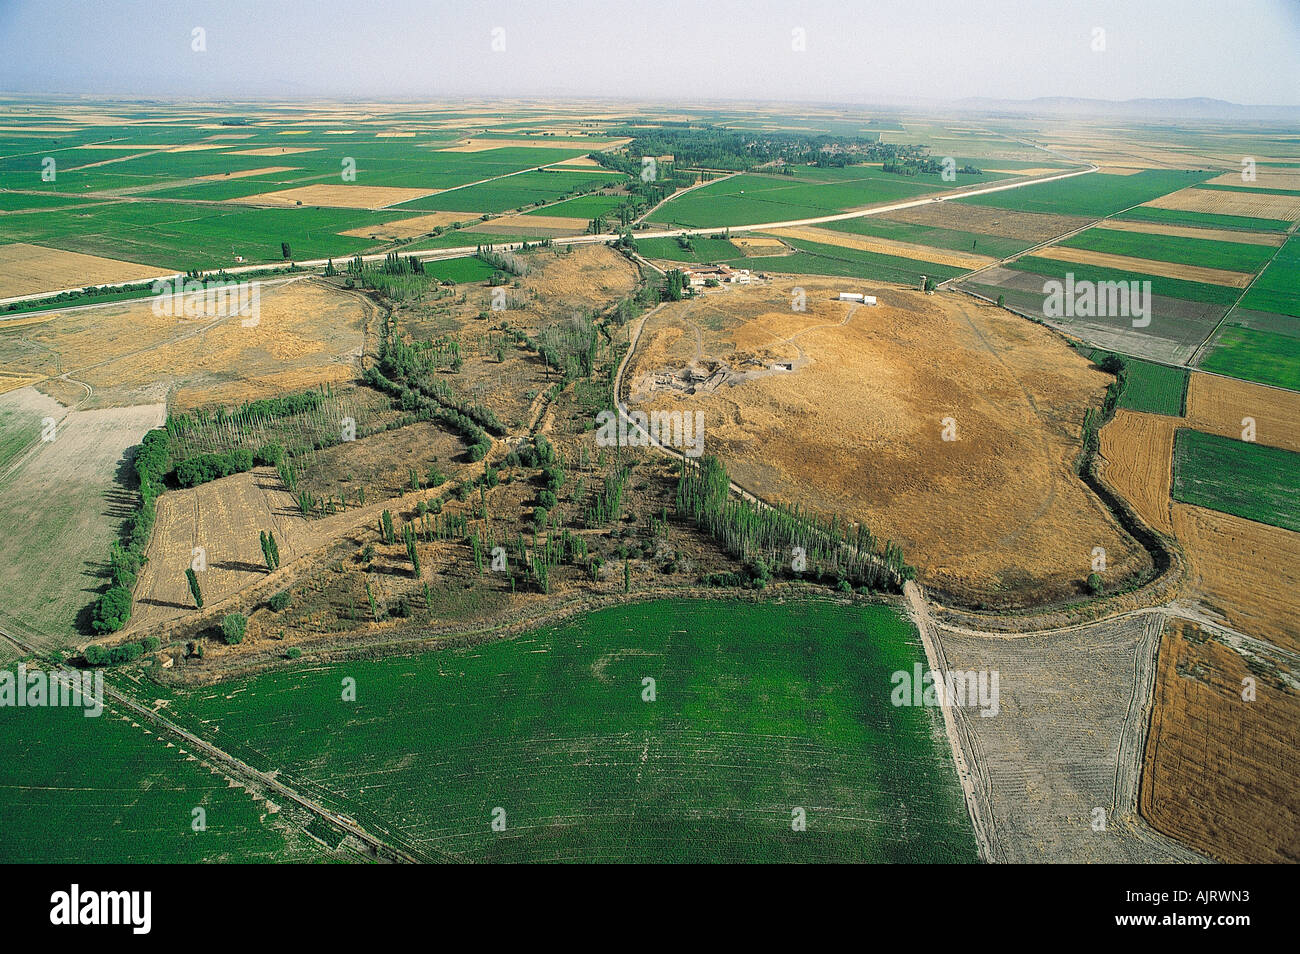 Aerial view of Catalhoyuk tumulus in Cumra, Turkey. - Stock Image